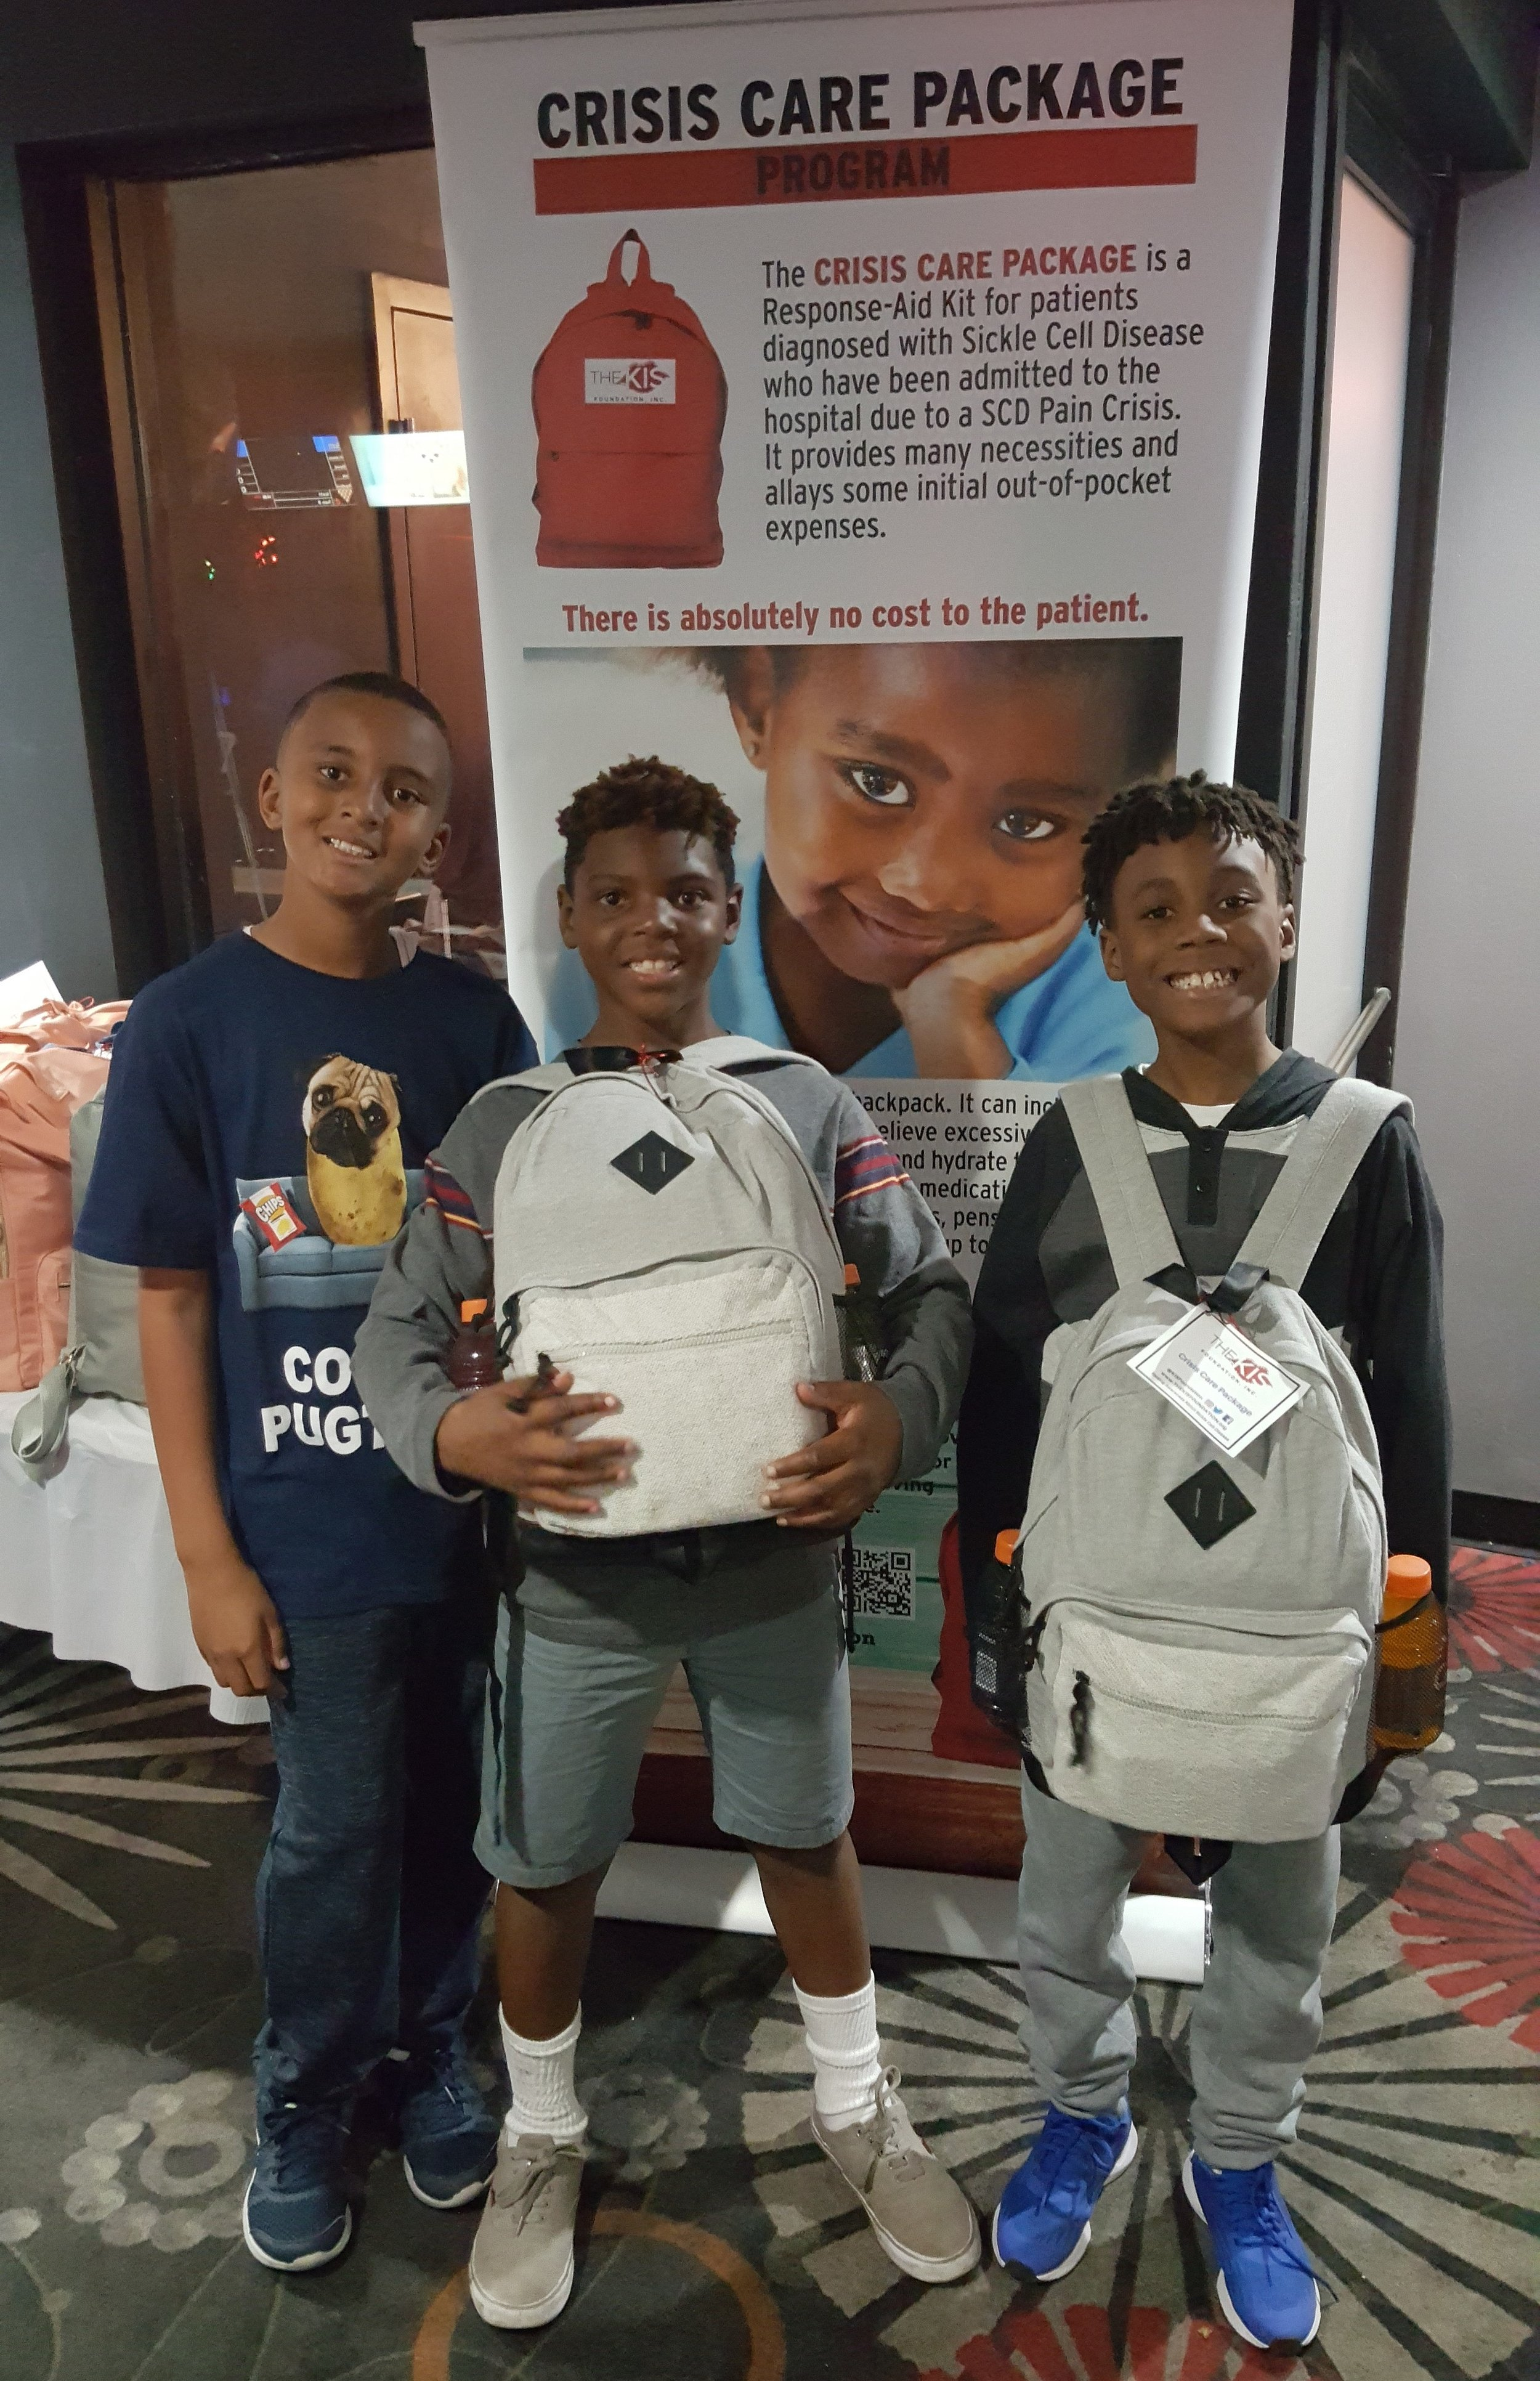 All SCD Patients received there very own Crisis Care Package at the event. - This Response-Aid Kit is housed in a backpack and designed to assist a patient before, during, and after a Sickle Cell Crisis.